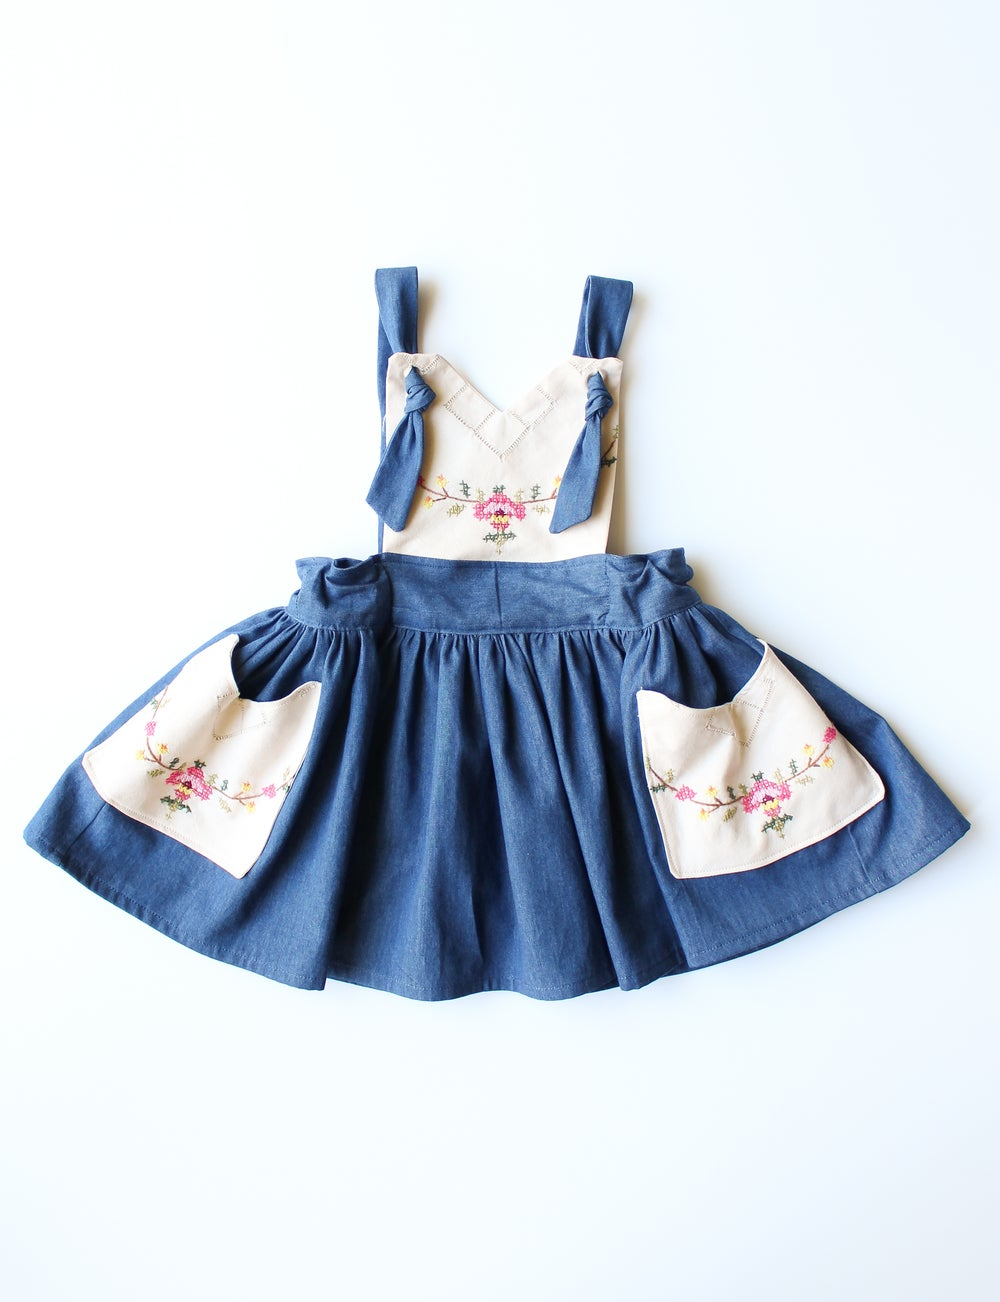 Image of Vintage Embroidered Pinafore Dress- Size 12/24 Months